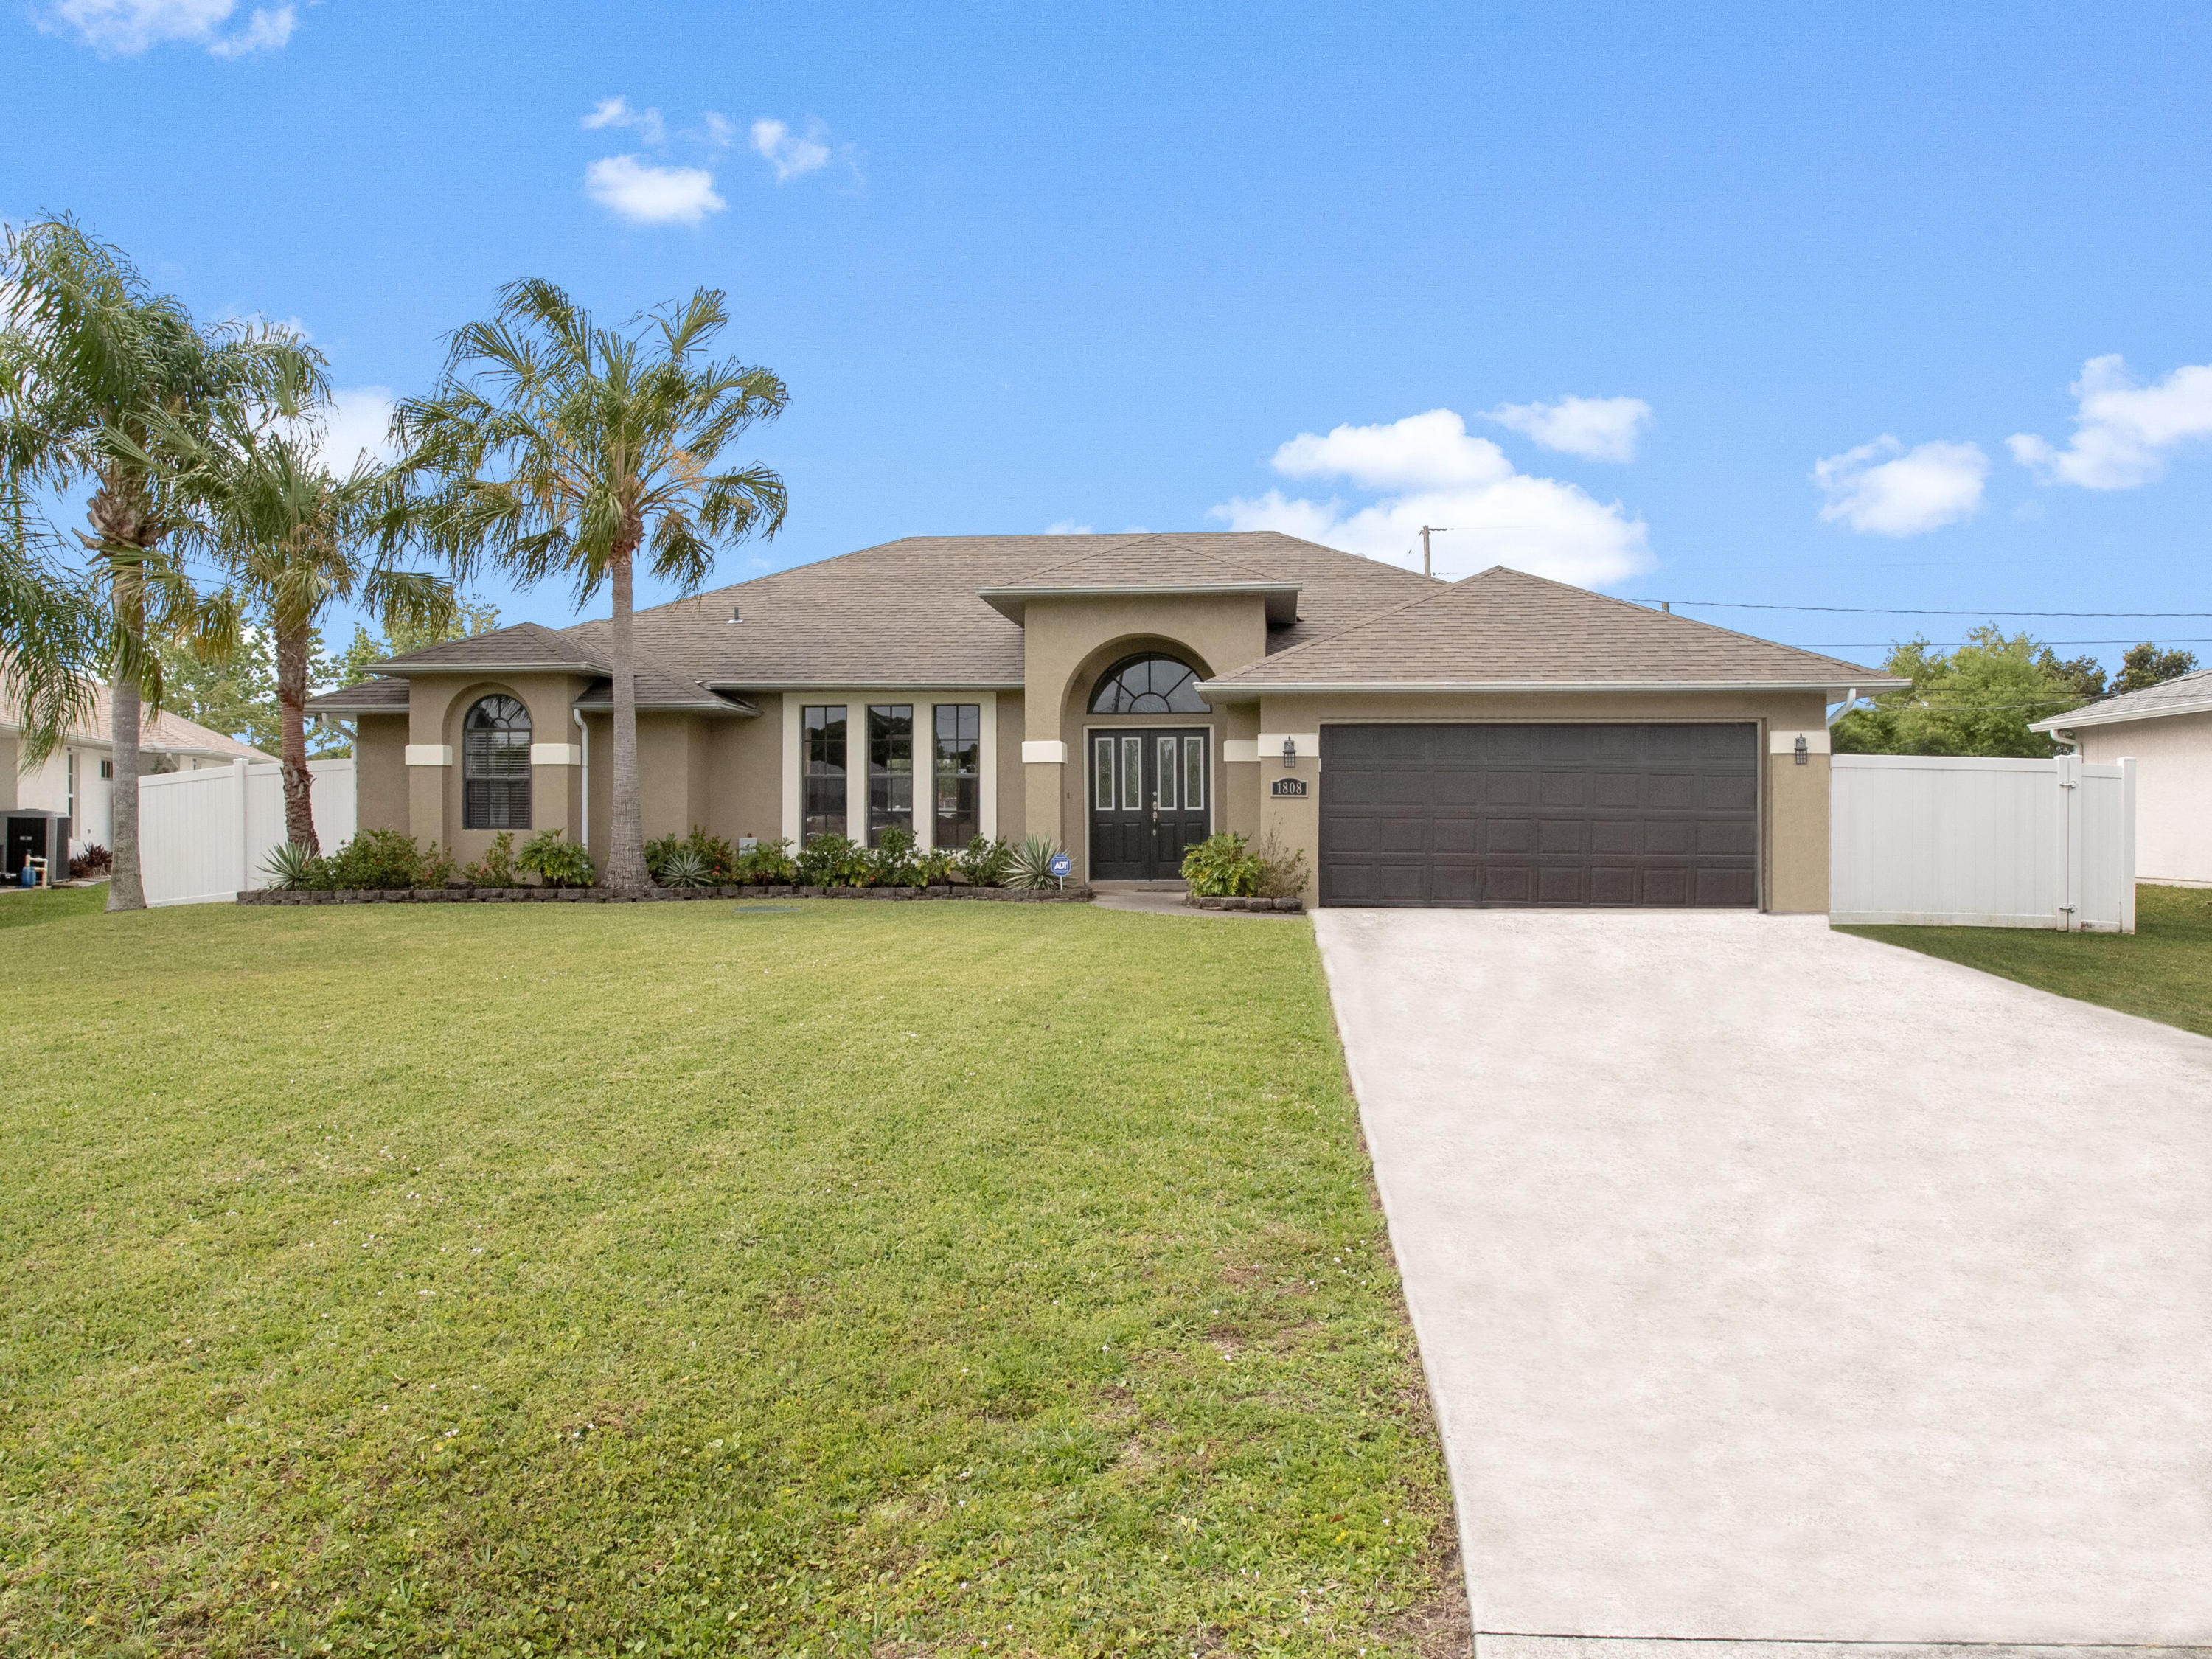 1808 SE Gaskins Circle, Port Saint Lucie, Florida